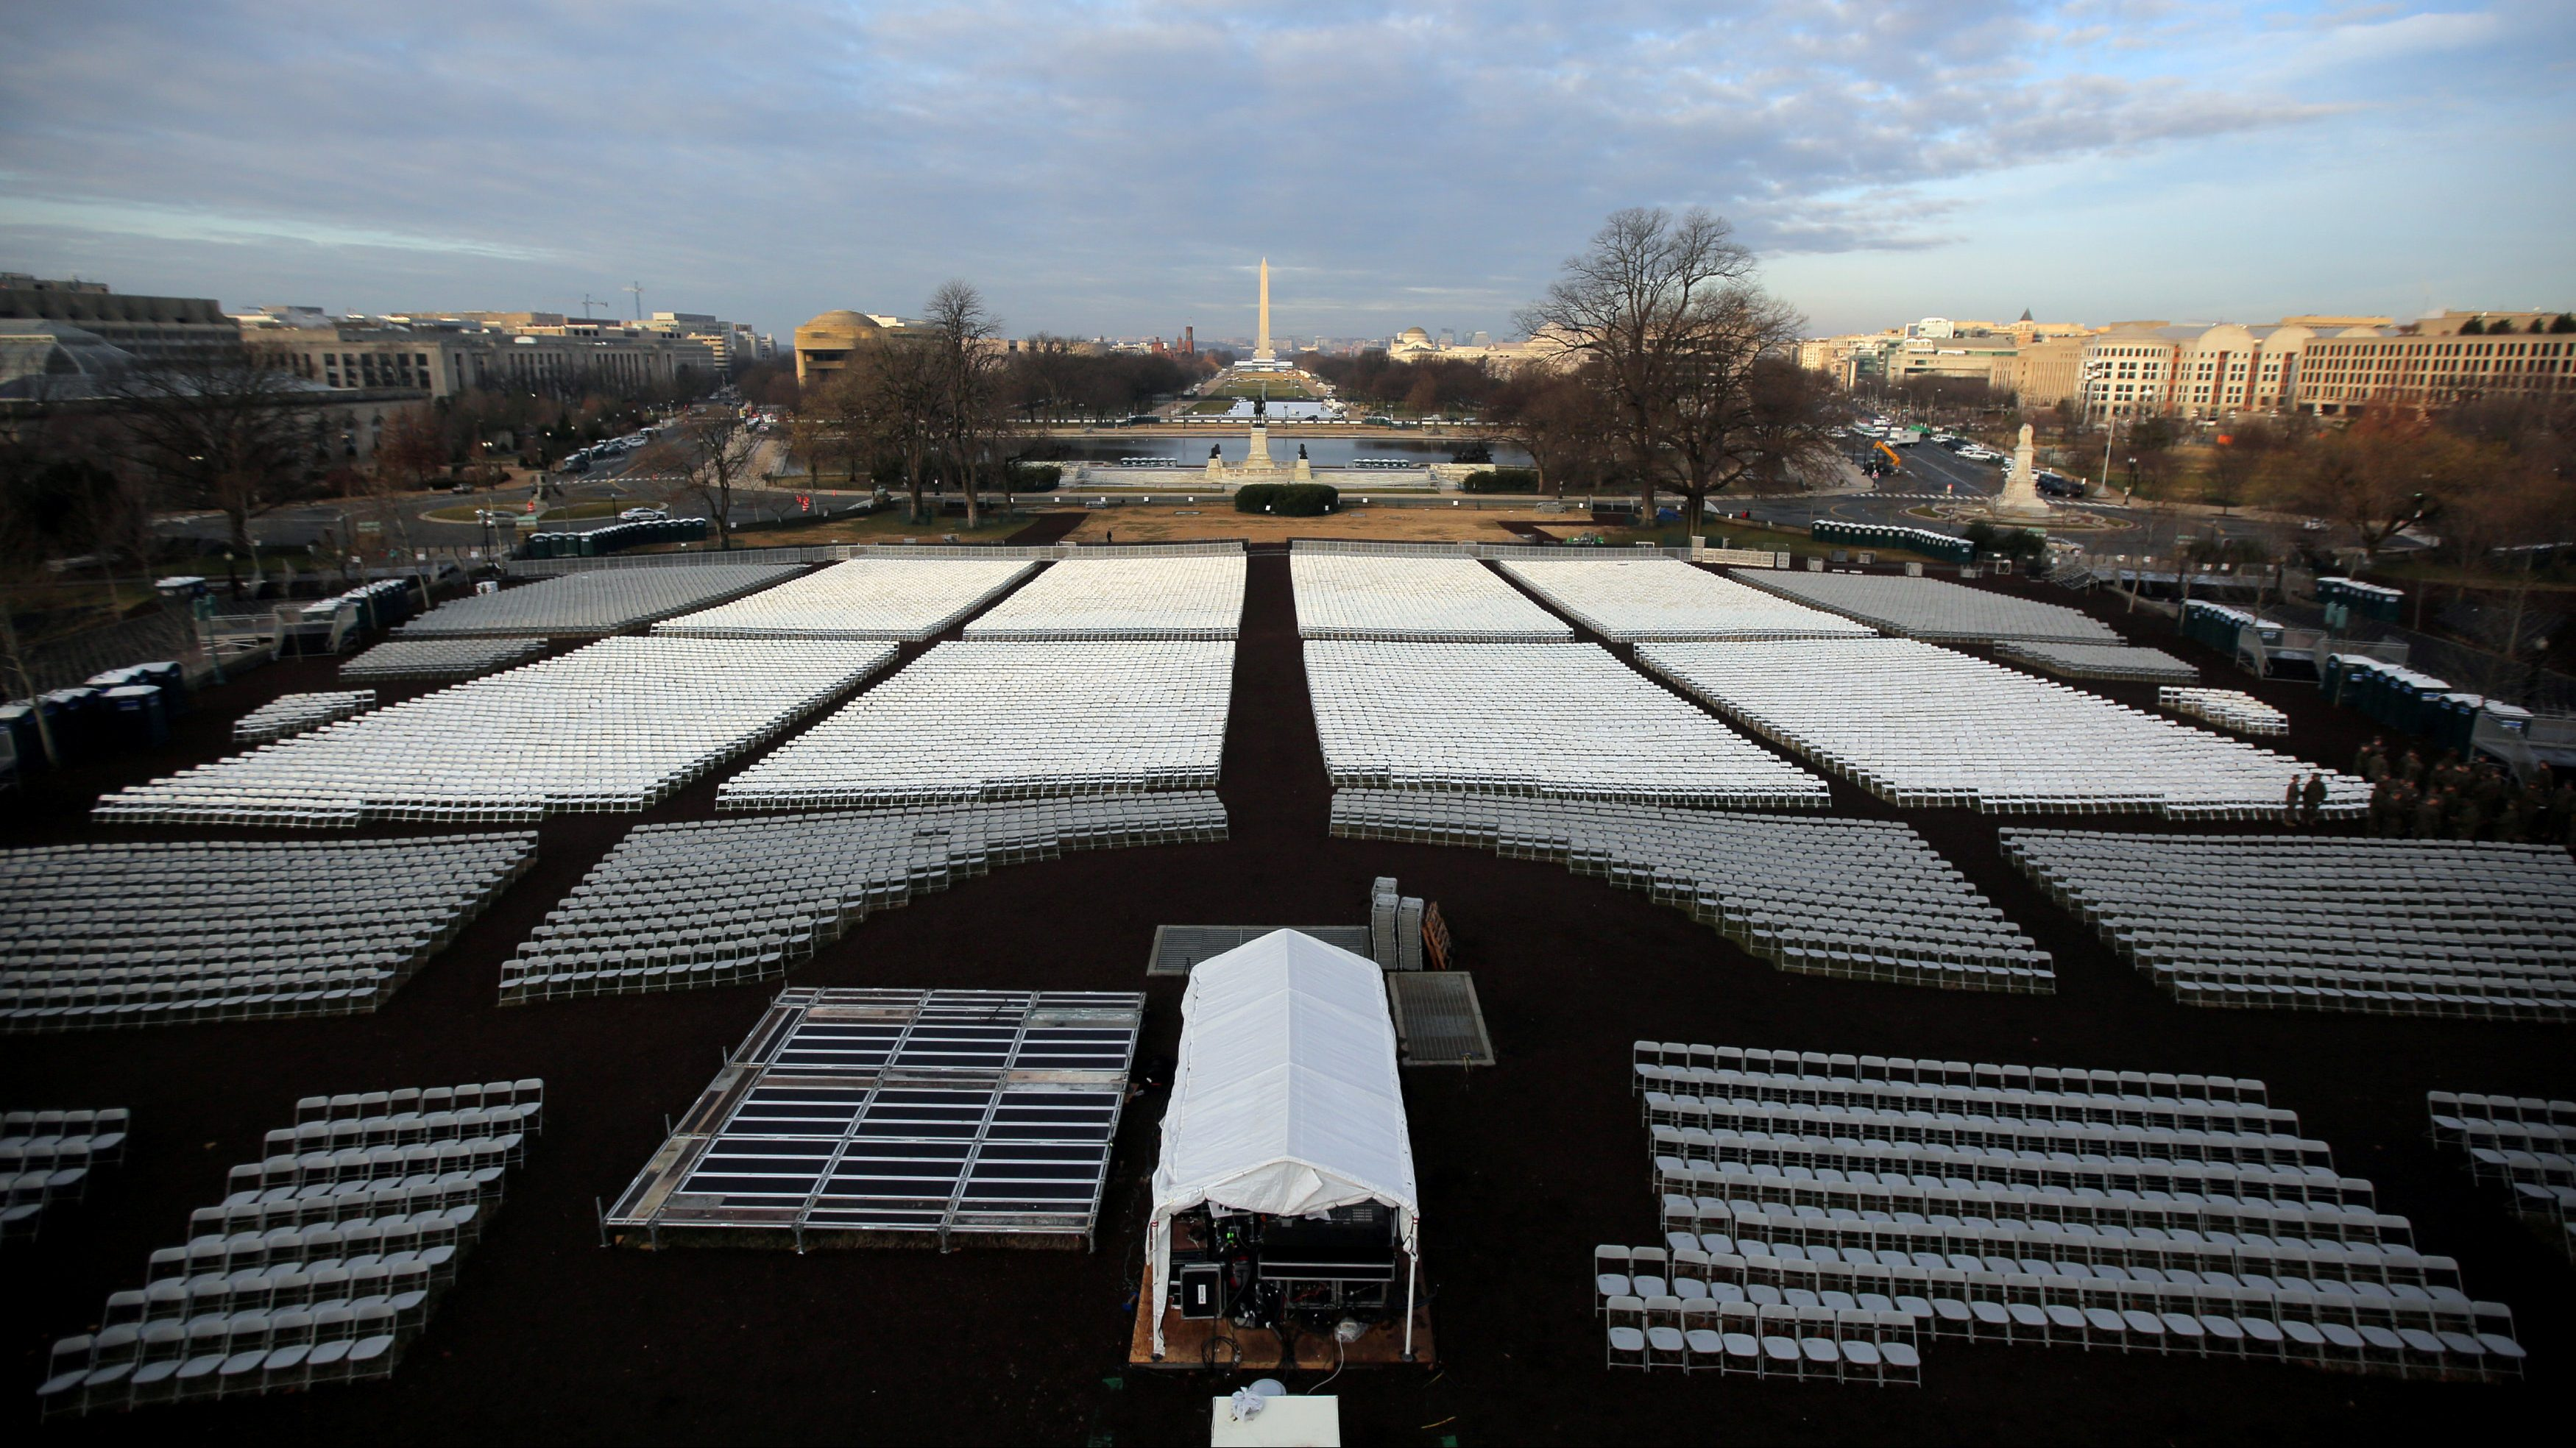 Empty seats are seen at the National Mall during a rehearsal for the inauguration ceremony of U.S. President-elect Donald Trump in Washington, U.S., January 15, 2017.